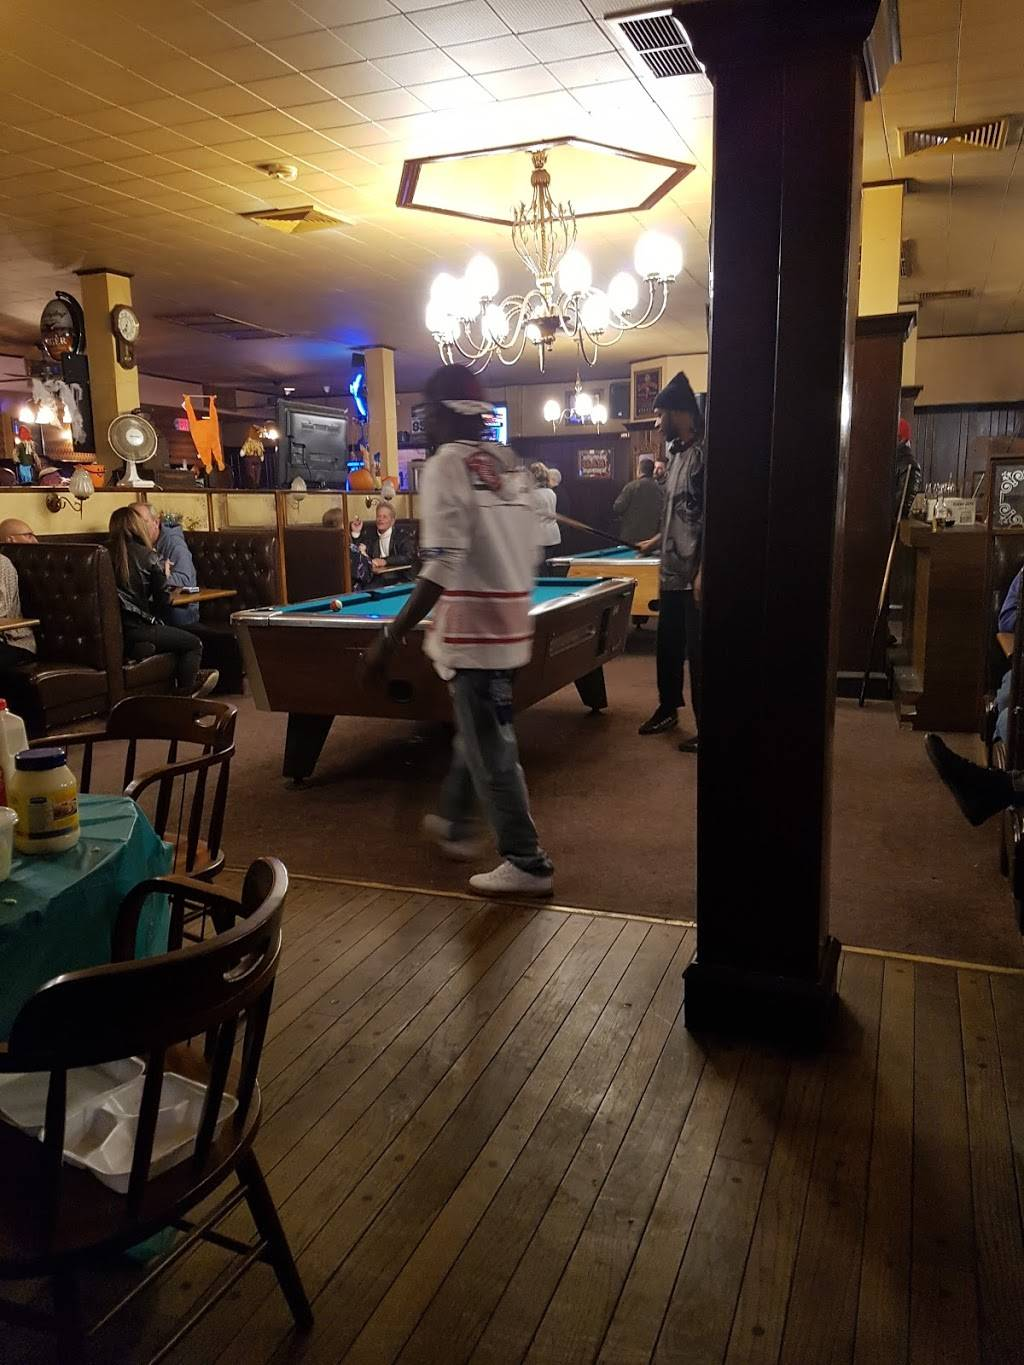 Waterford Inn | restaurant | 6825 Ludlow St, Upper Darby, PA 19082, USA | 6103527300 OR +1 610-352-7300